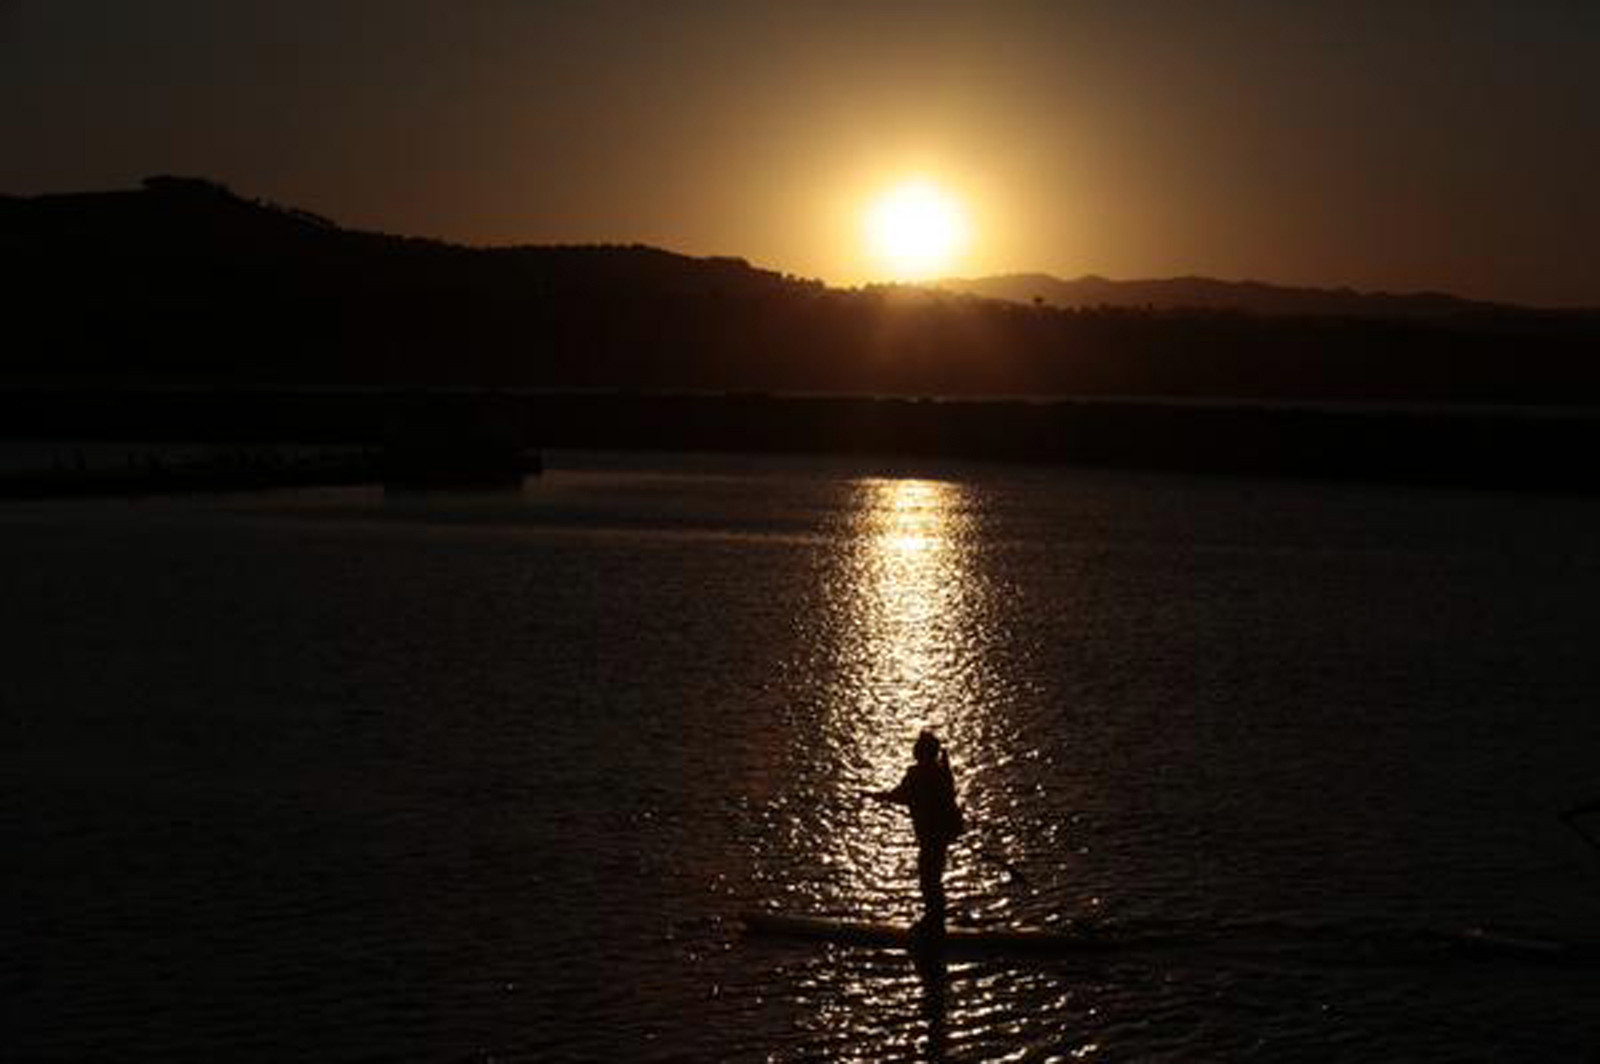 After mini-heat wave, cooler weekend ahead in Southern California